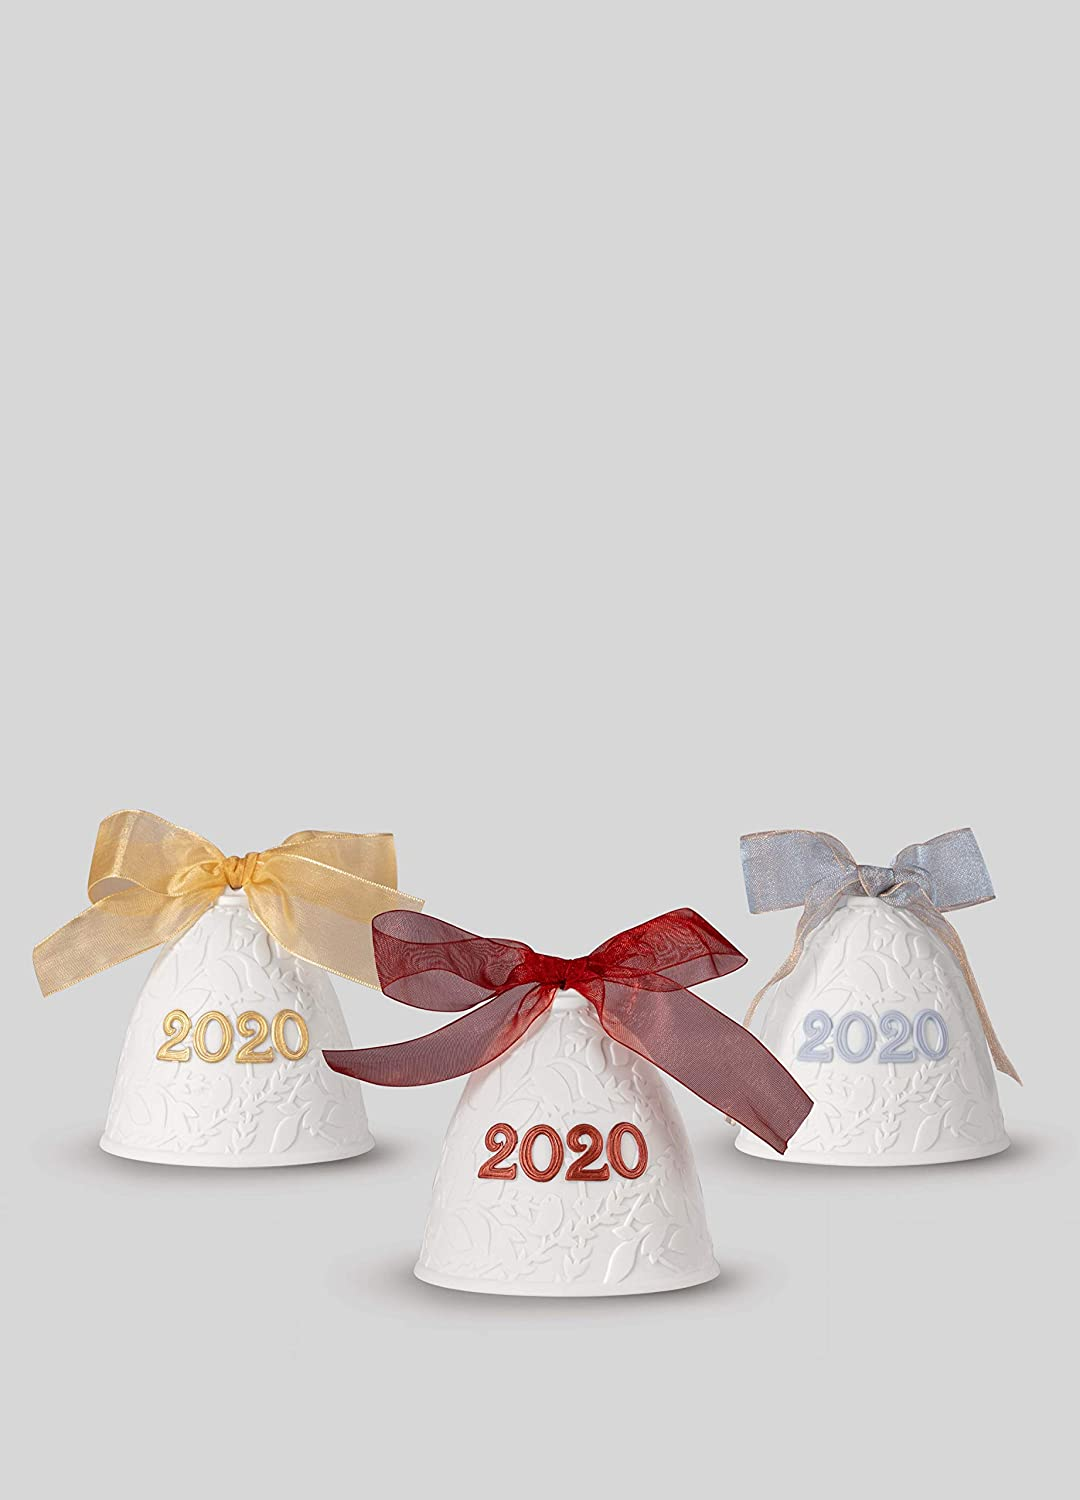 BRAND NEW 2020 ANNUAL CHRISTMAS BELL #18454 MINT /& BOXED! LLADRO